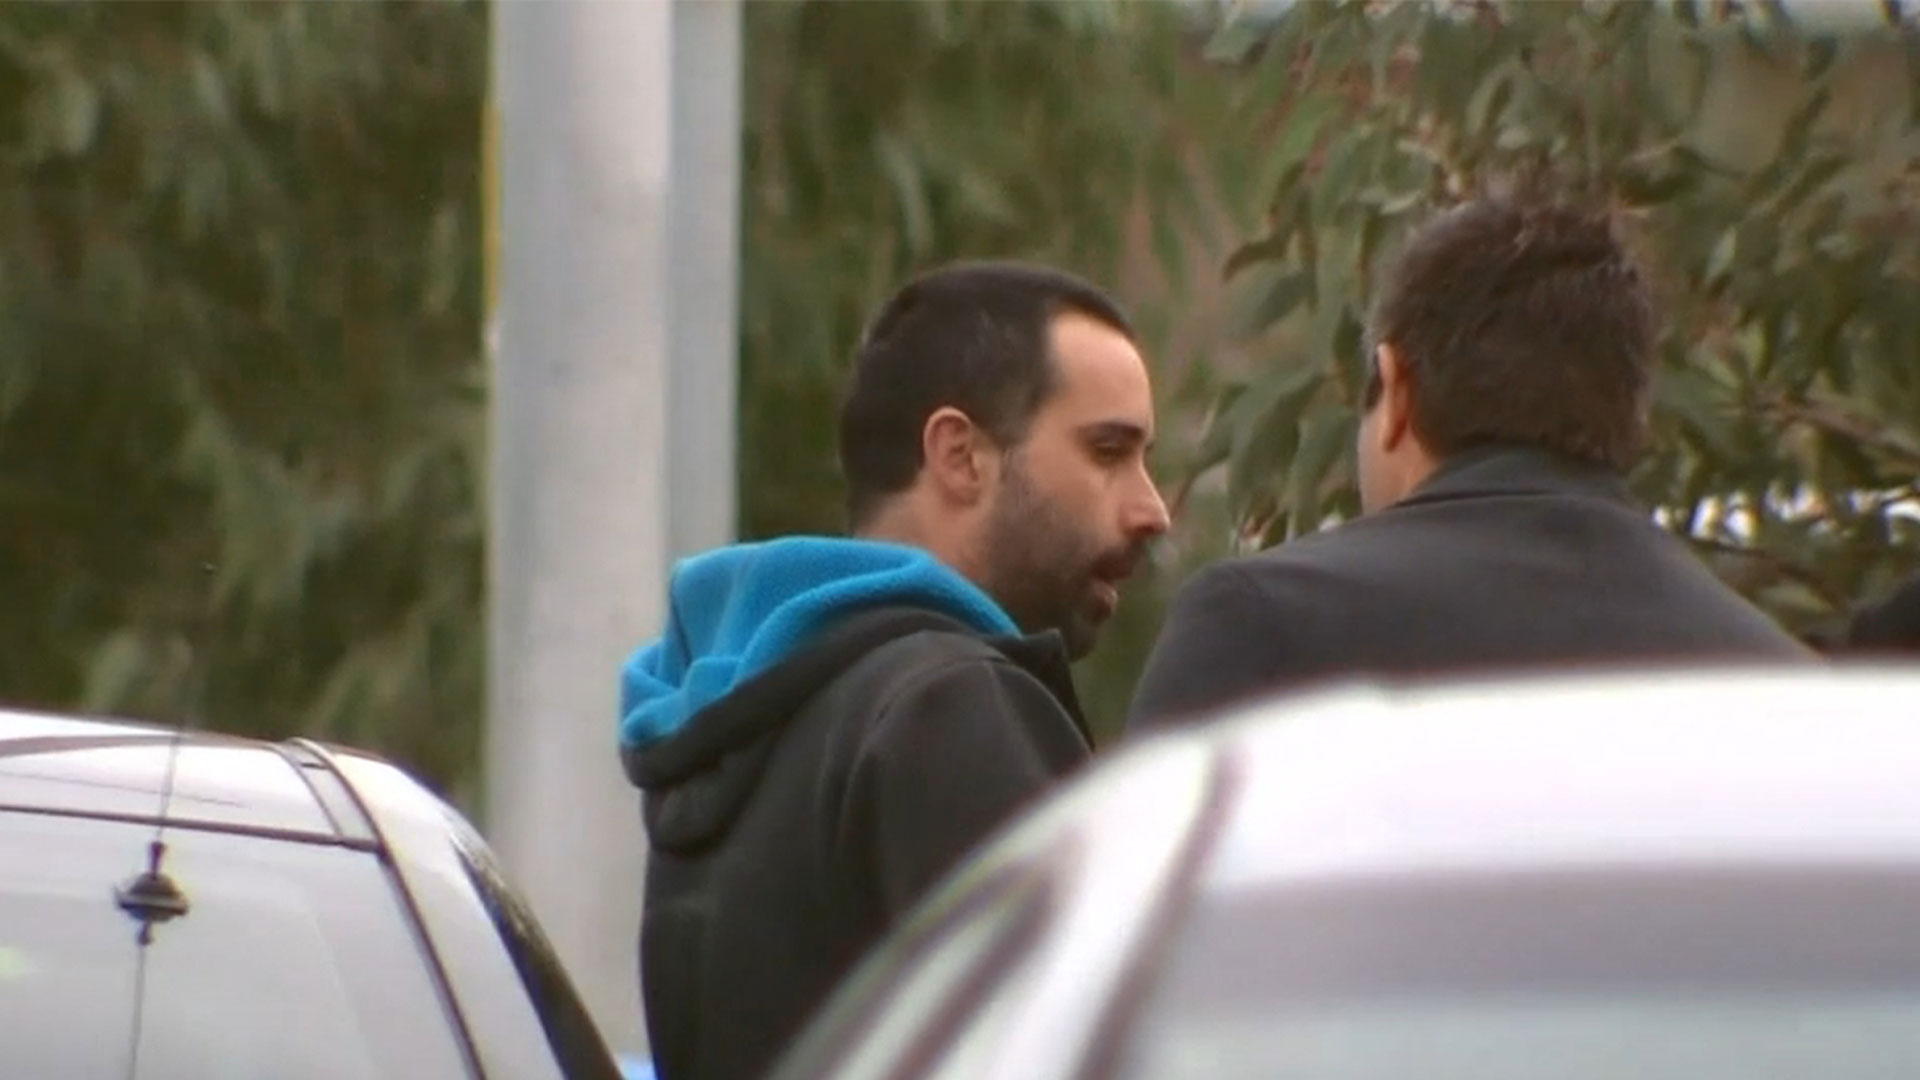 Mother stabbed to death in Werribee housing estate